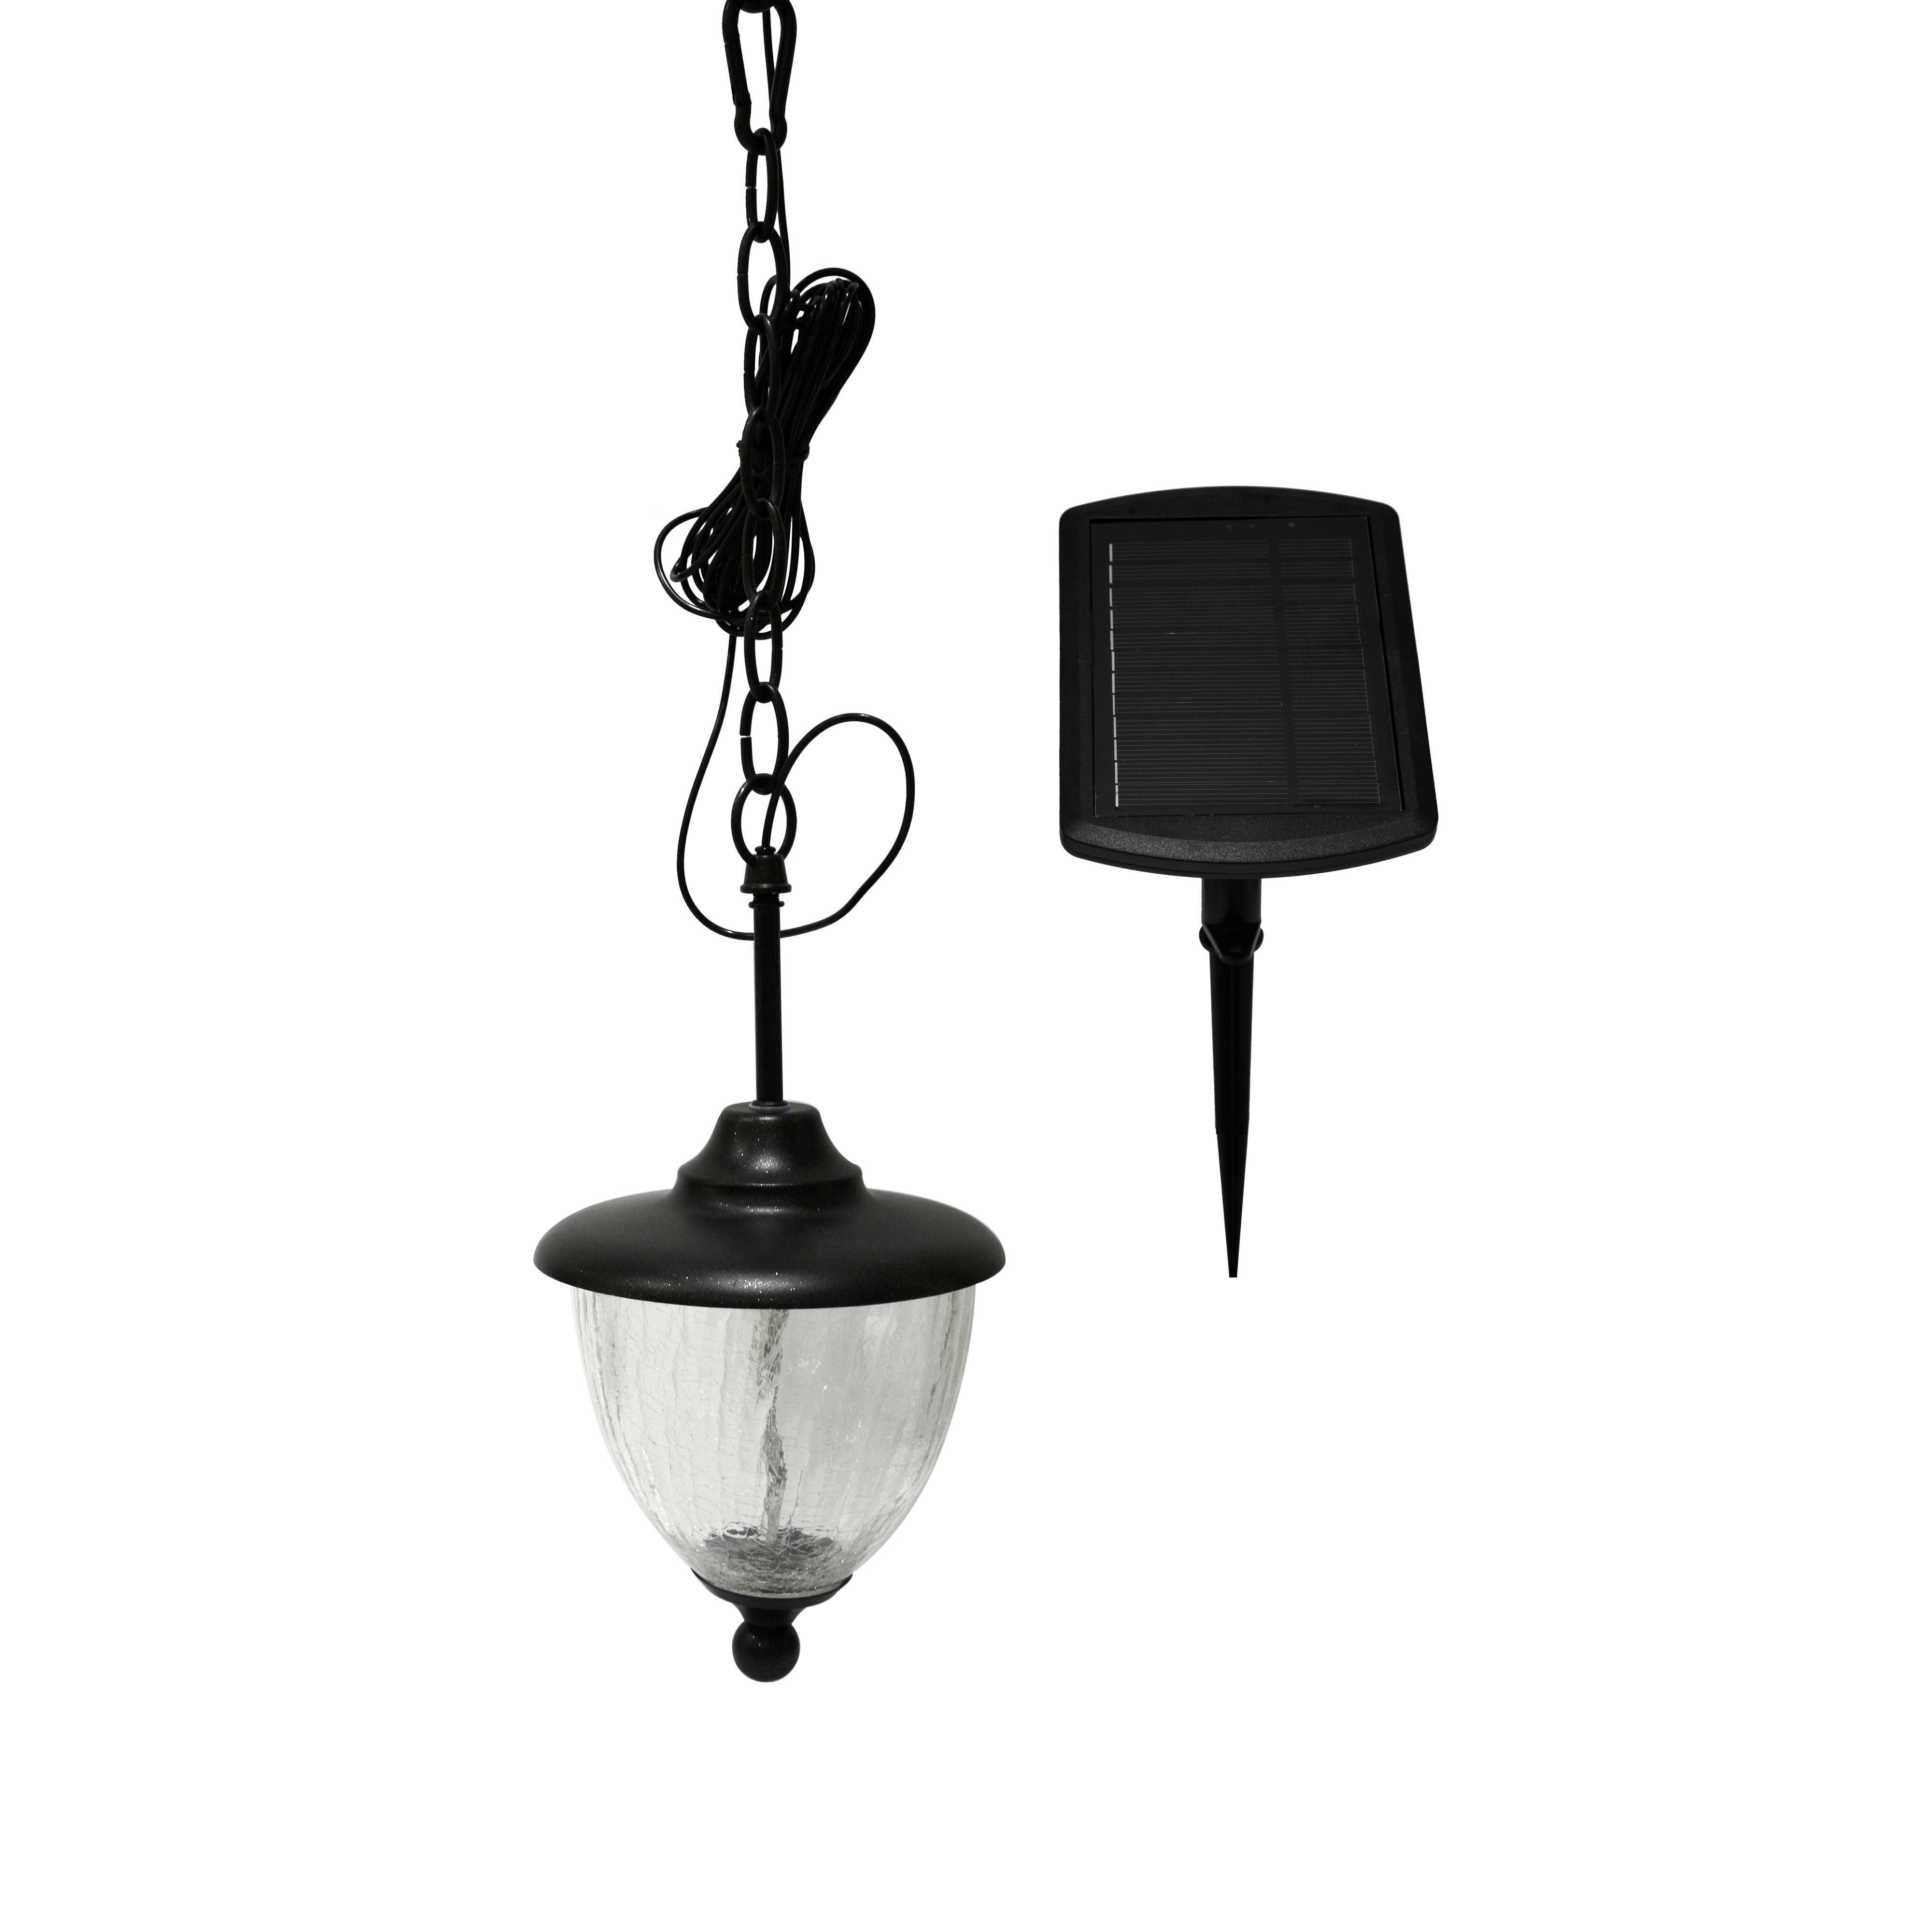 Photos Hgtv Transitional Dining Room With Hanging Light Fixture Throughout Modern Outdoor Solar Lights At Wayfair (#13 of 15)